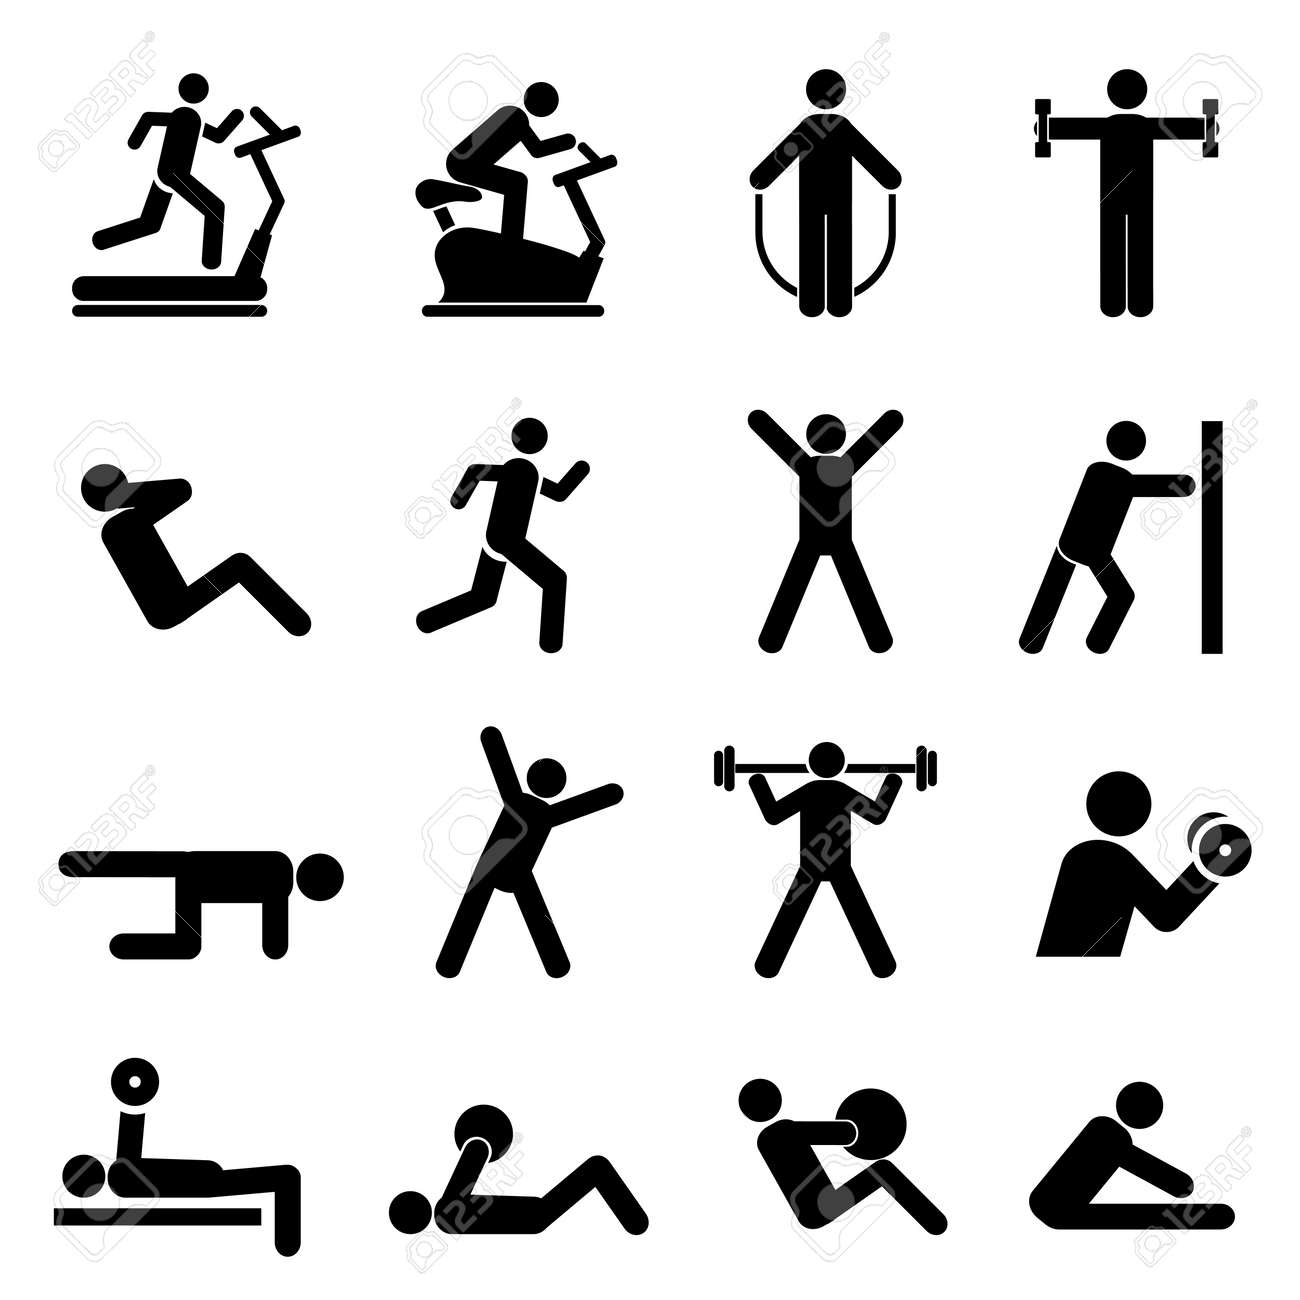 People exercising for health and fitness - 21409552